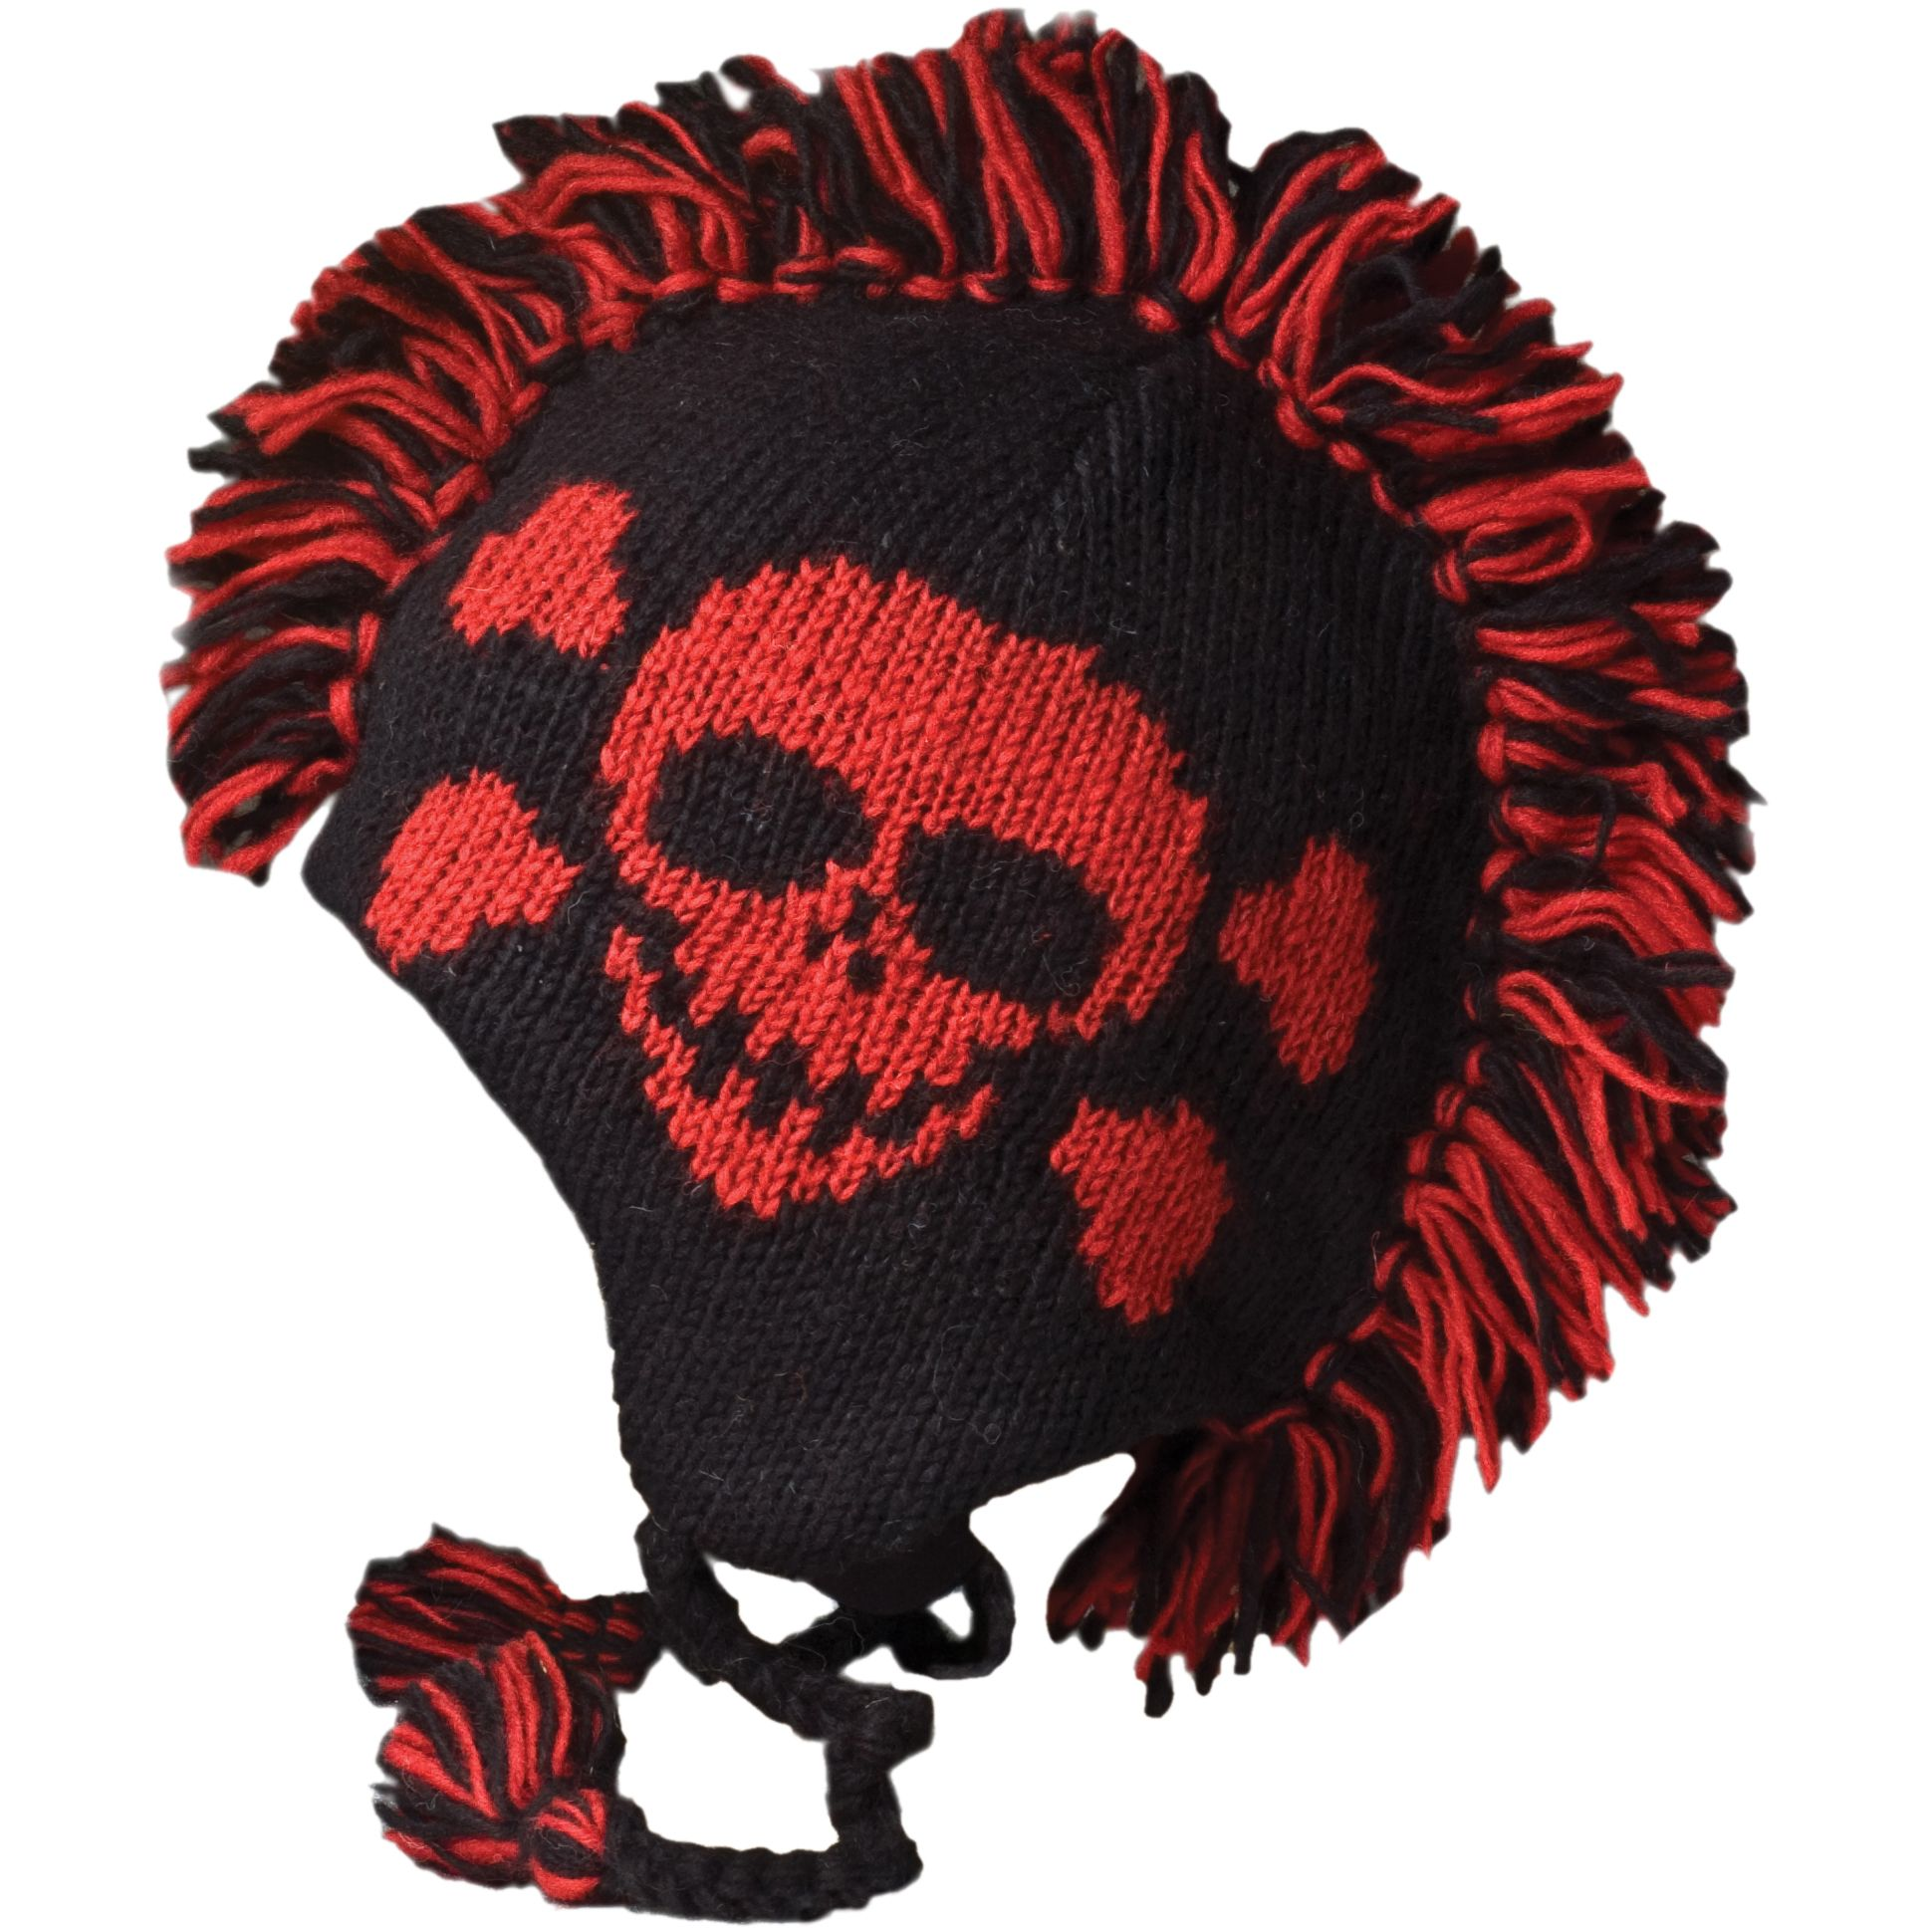 Skull winter hat google search 2015 winter hats pinterest knit mohawk hat with a skull tattoo bankloansurffo Gallery